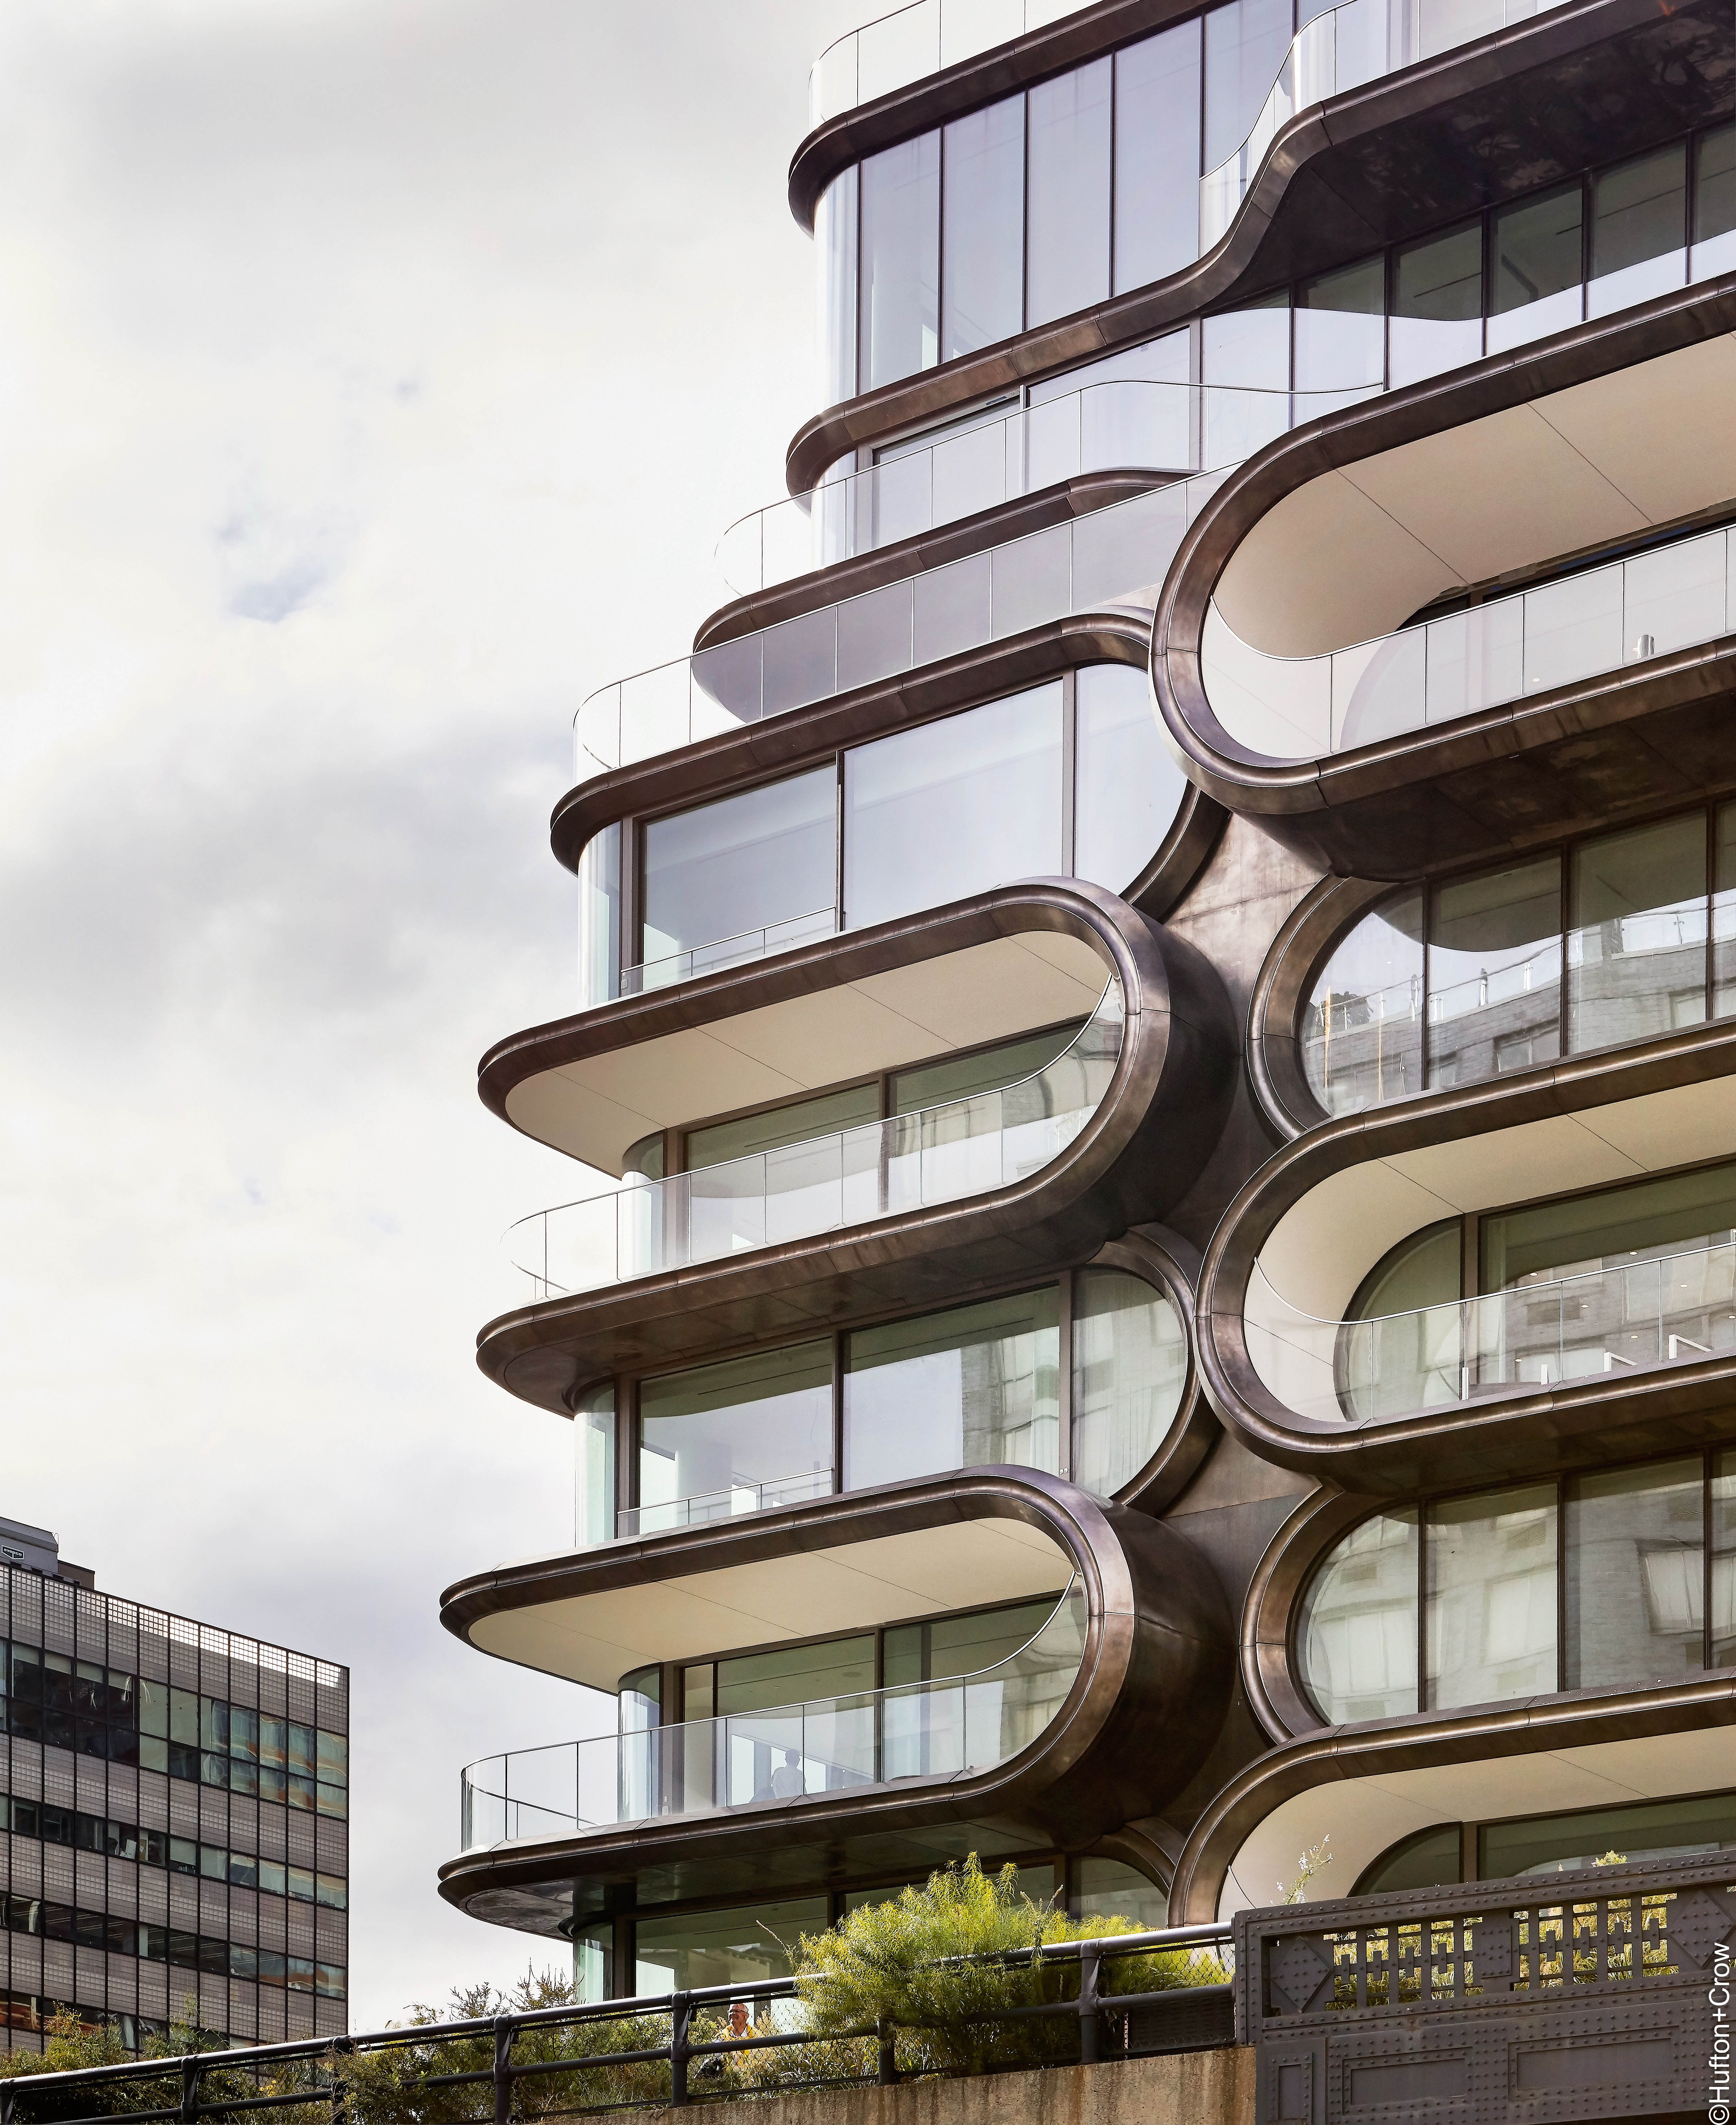 520 West 28th Street, New York - External view of the curved facade and balconys